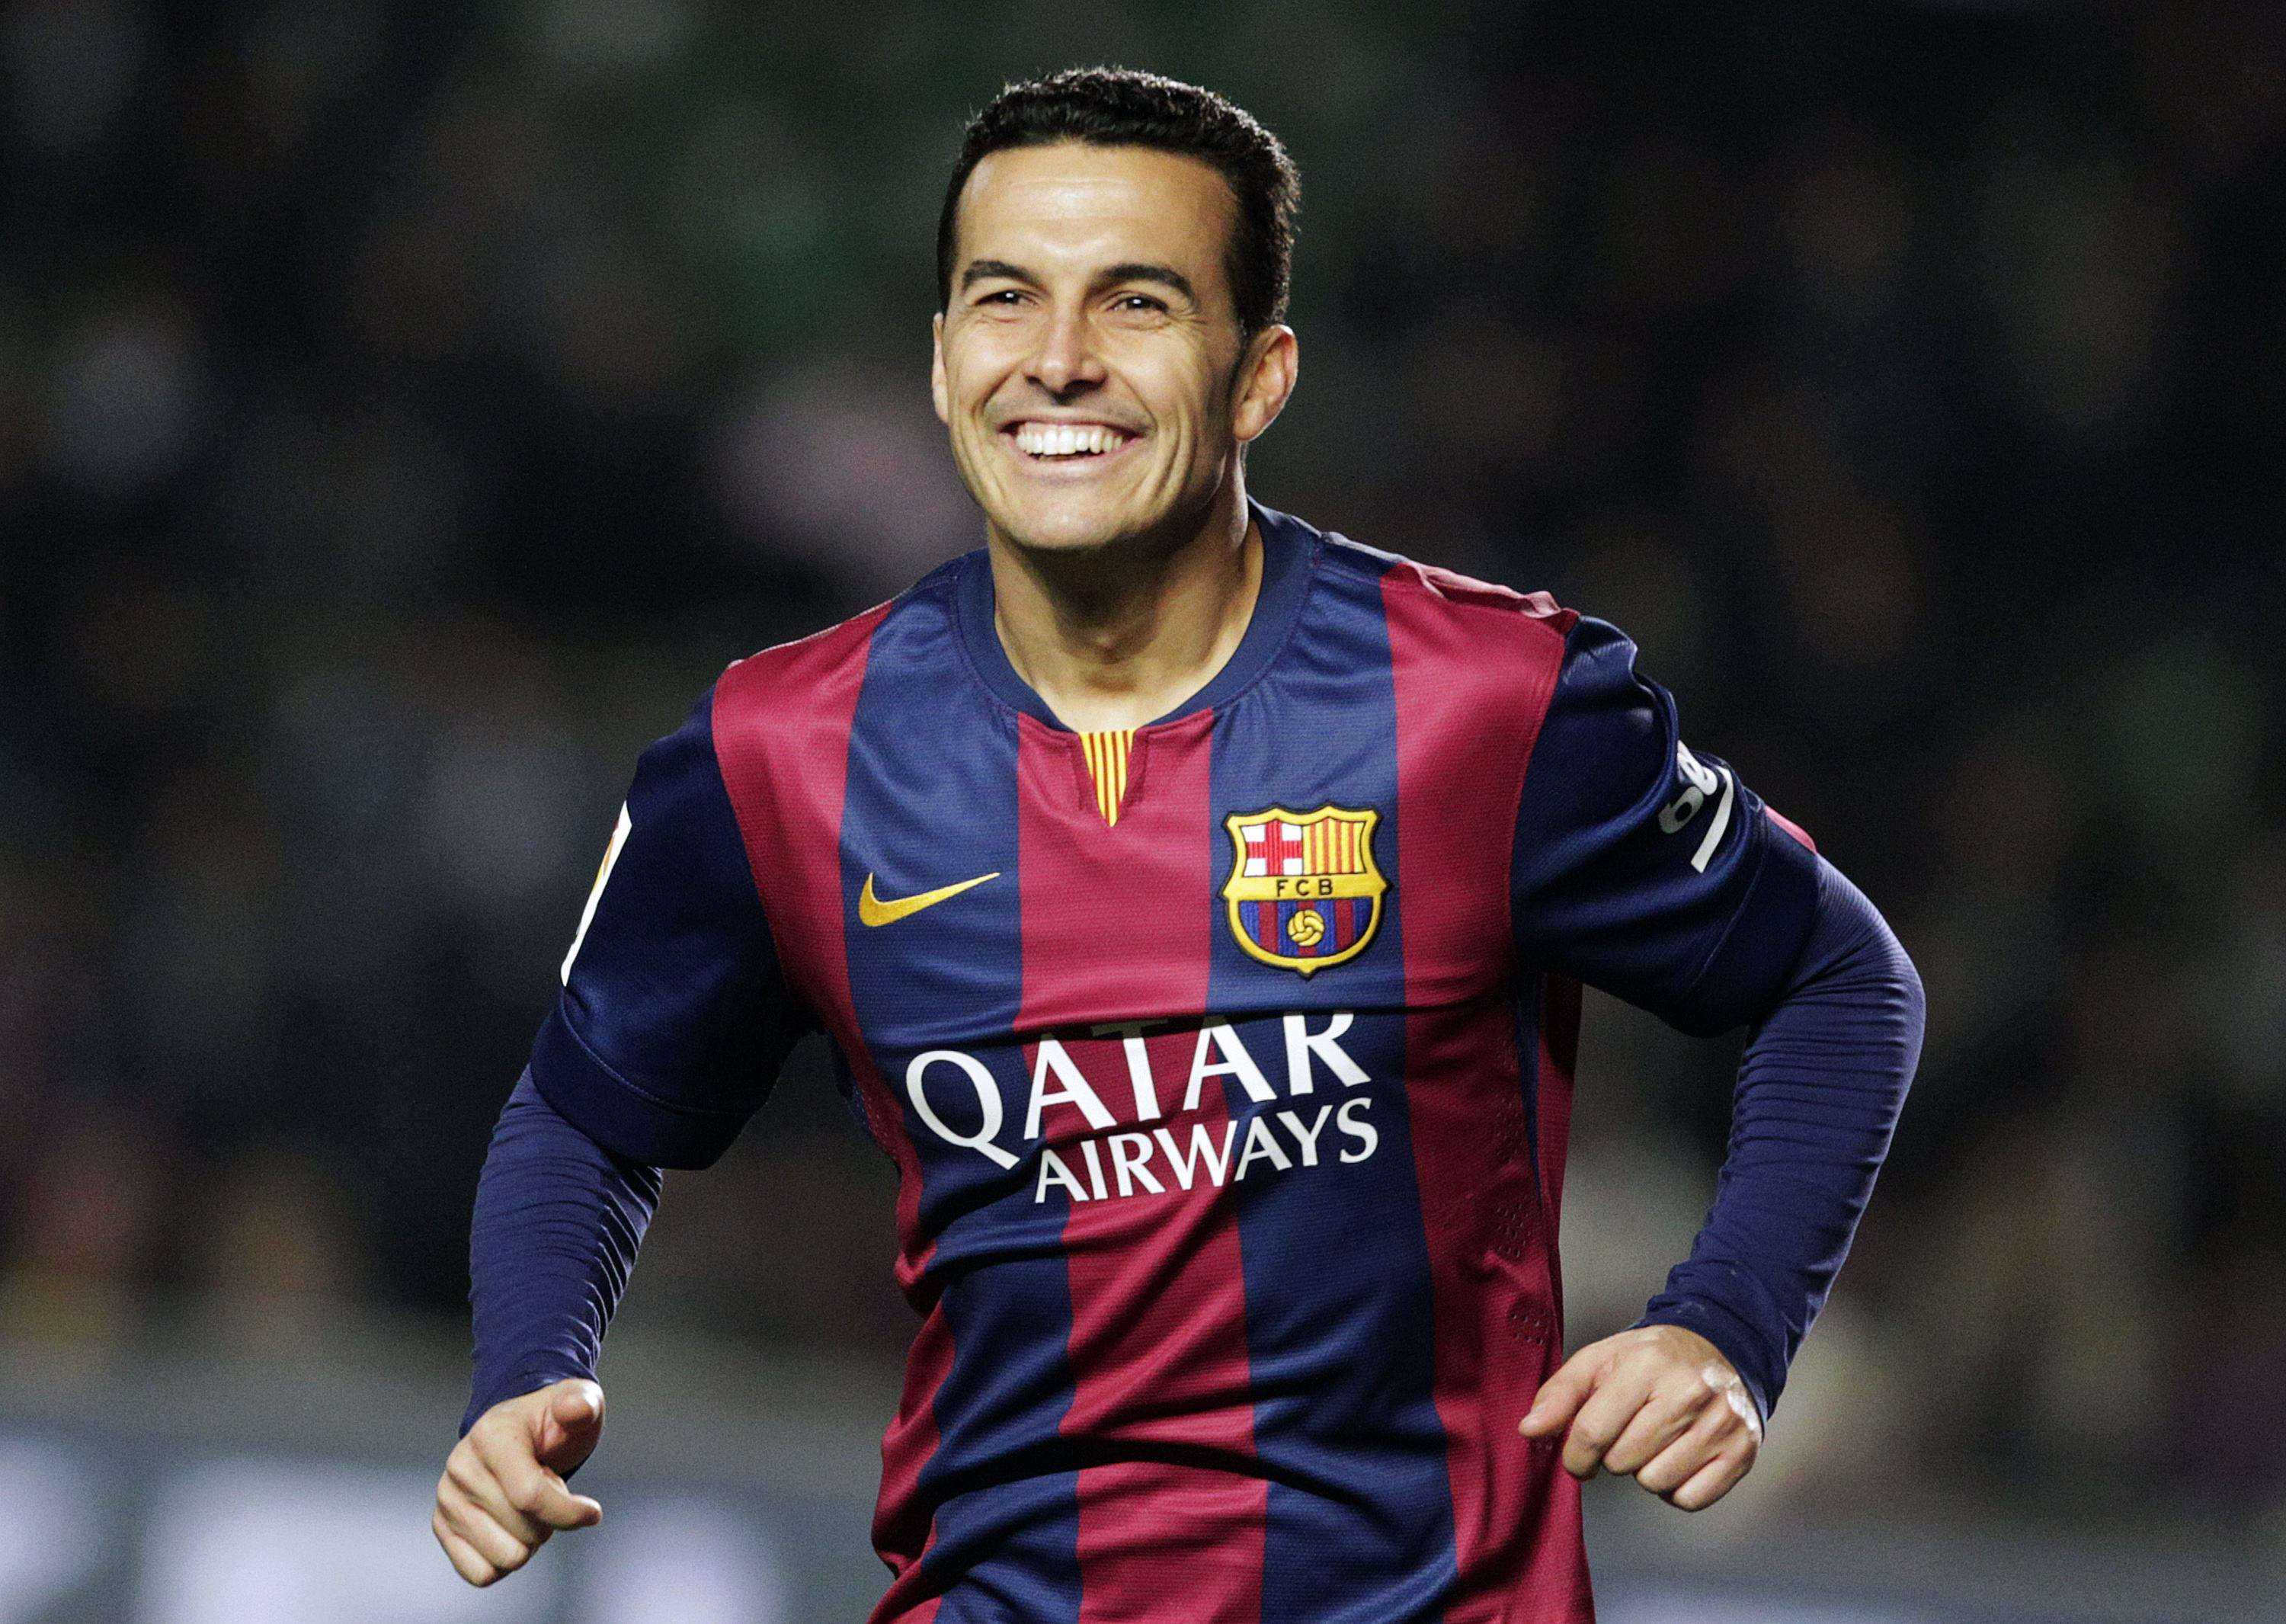 Barcelona's Pedro Rodriguez celebrates after he scored a goal against Elche during their Spanish first division soccer match at Martinez Valero stadium in Elche January 24, 2015. REUTERS/Heino Kalis (SPAIN - Tags: SPORT SOCCER) Foto: HEINO KALIS/REUTERS